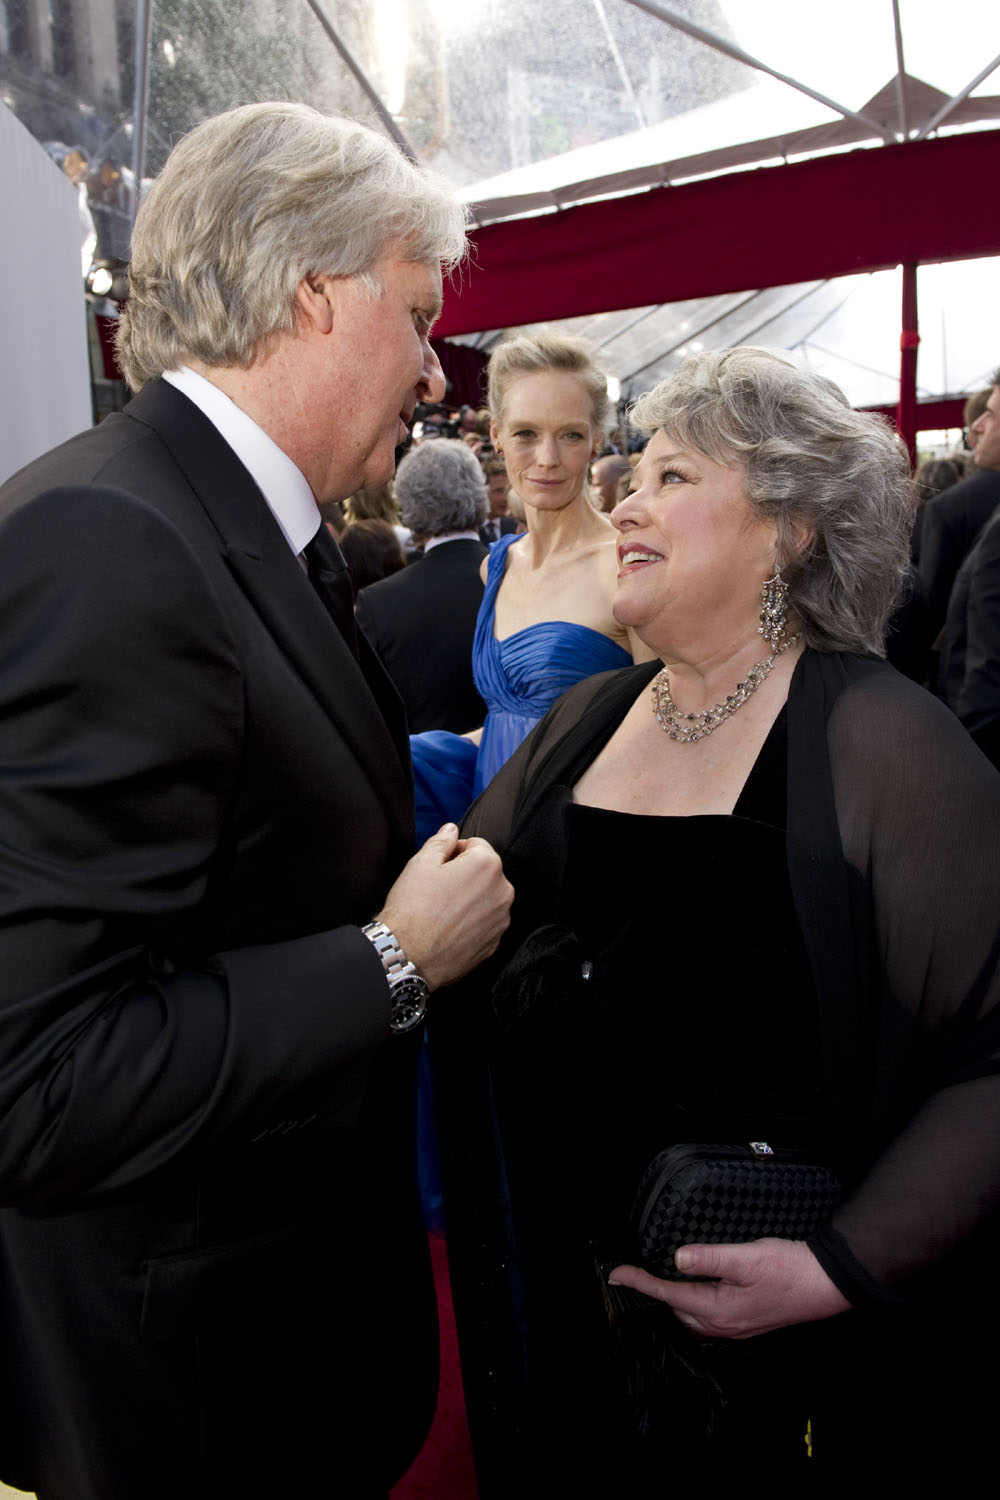 James Cameron, Kathy Bates